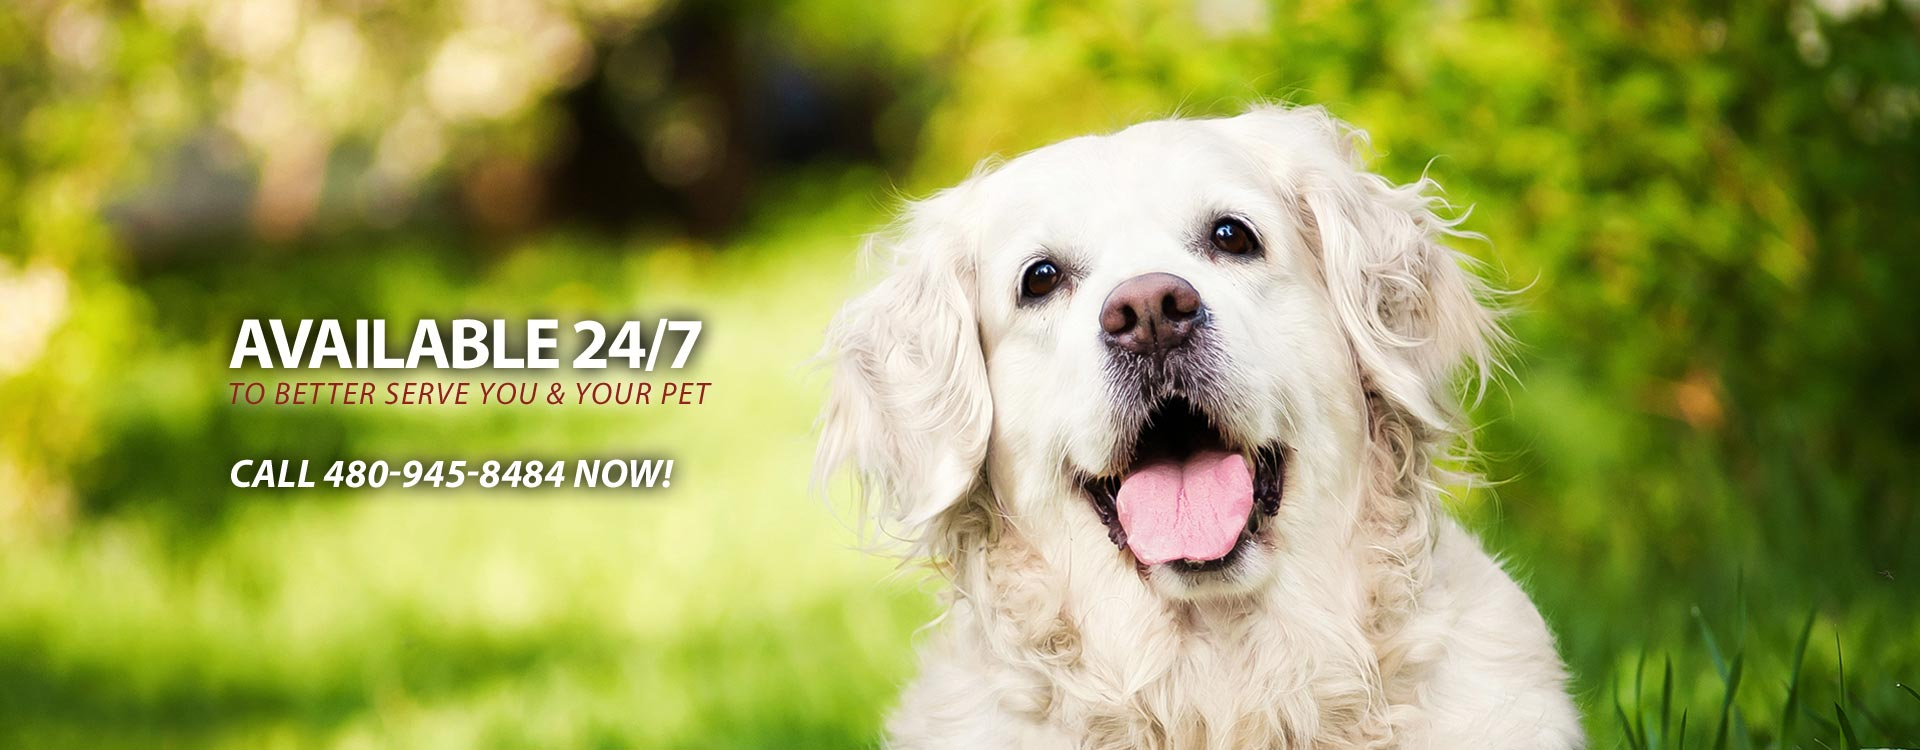 24 Hour Chandler Veterinary Service